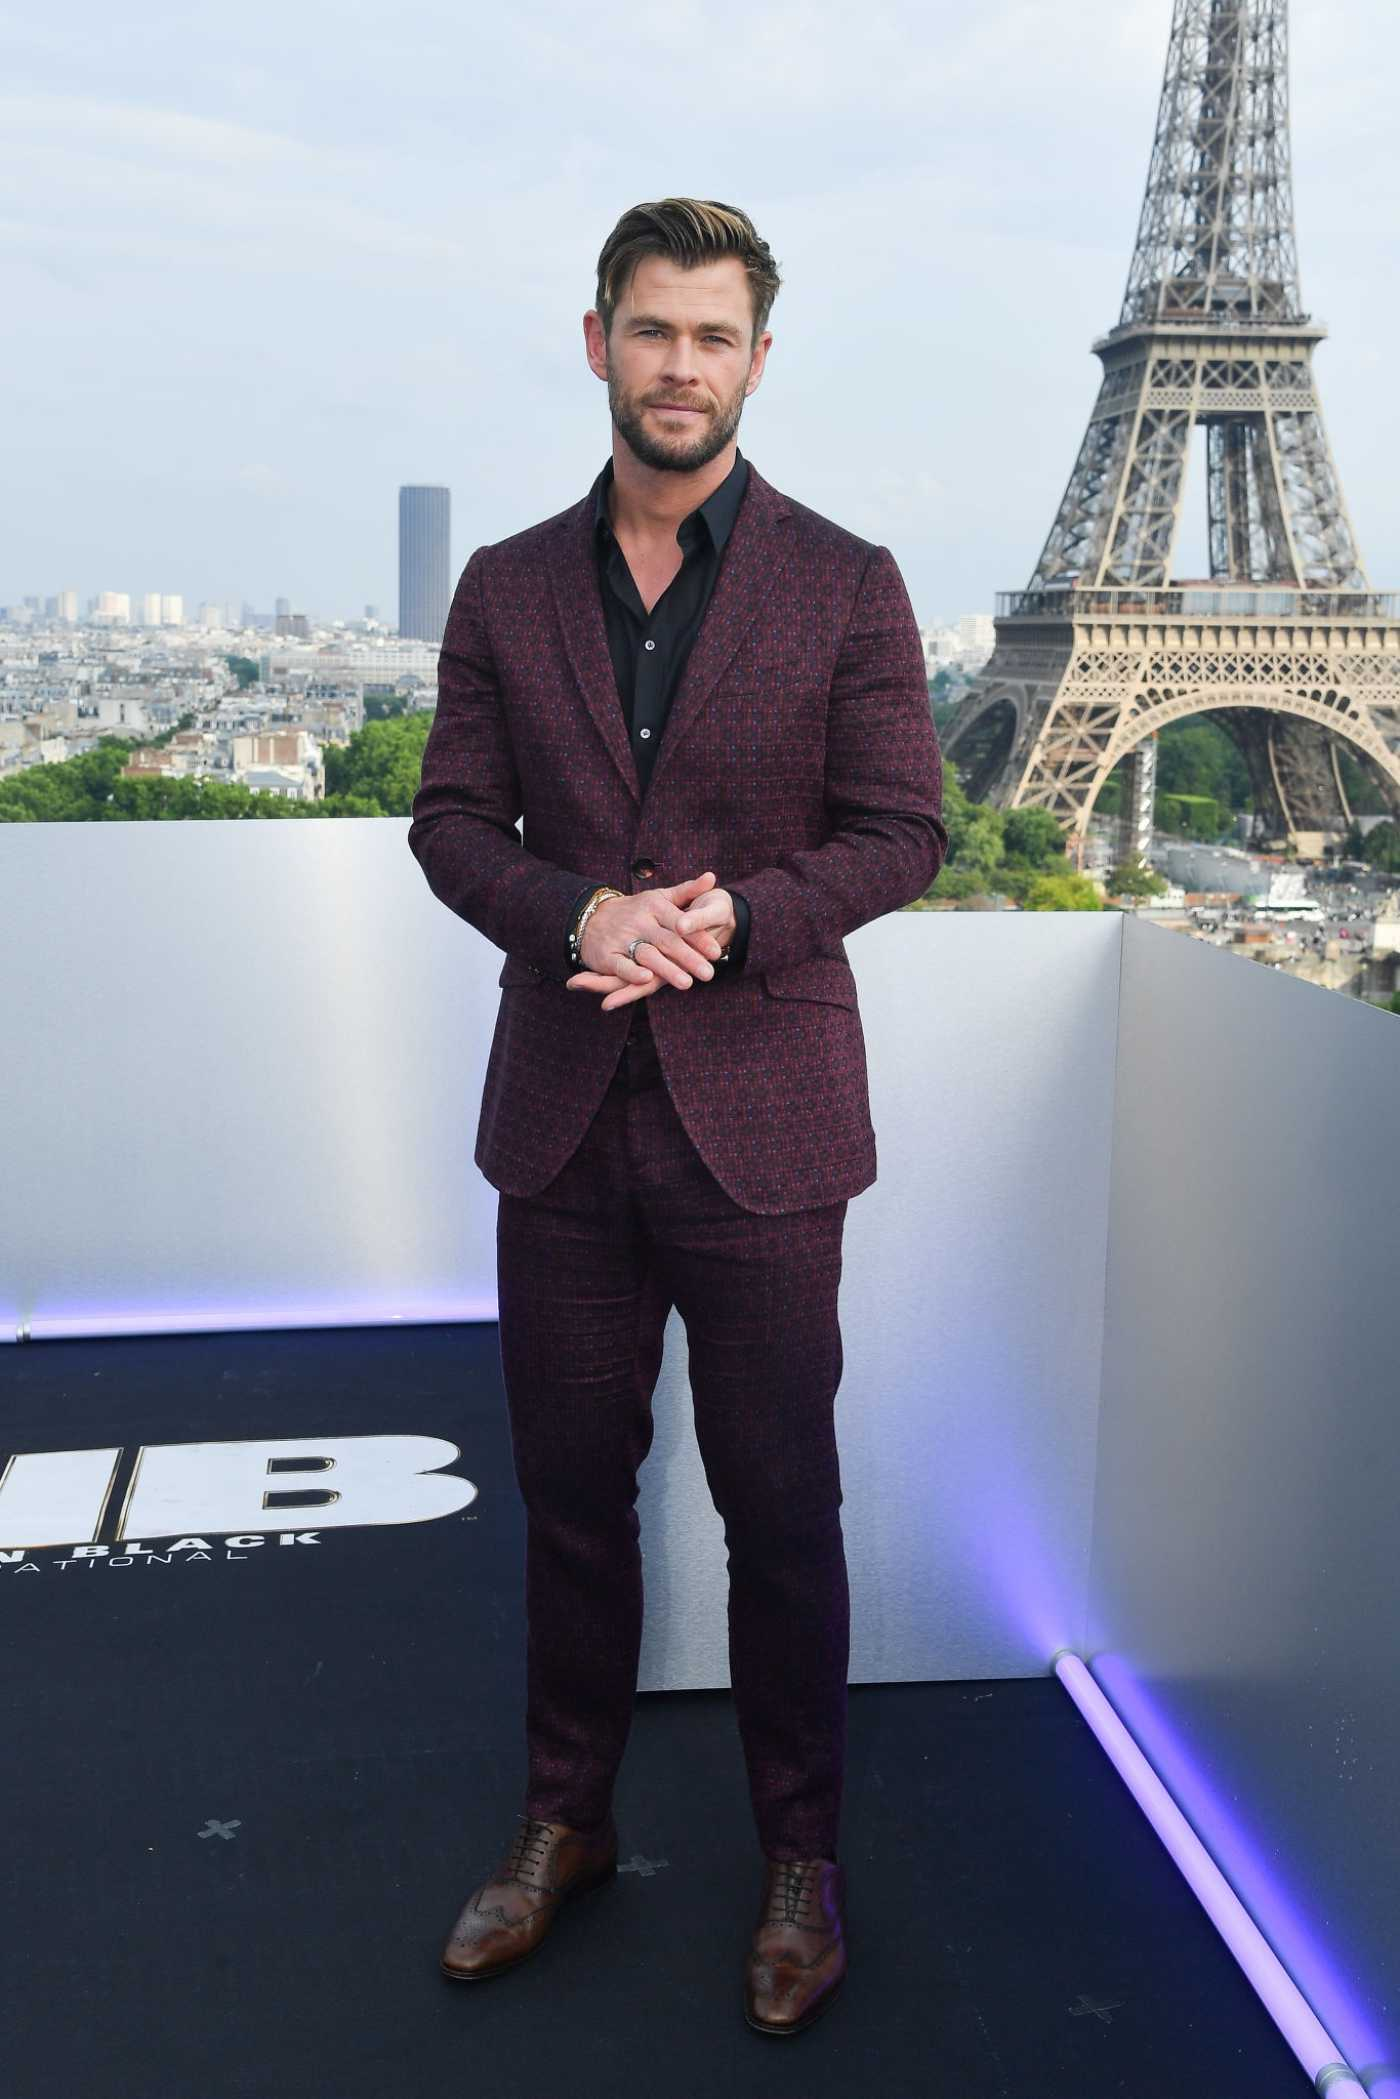 Chris Hemsworth Attends Men in Black Photocall with Tessa Thompson in Paris 06/04/2019